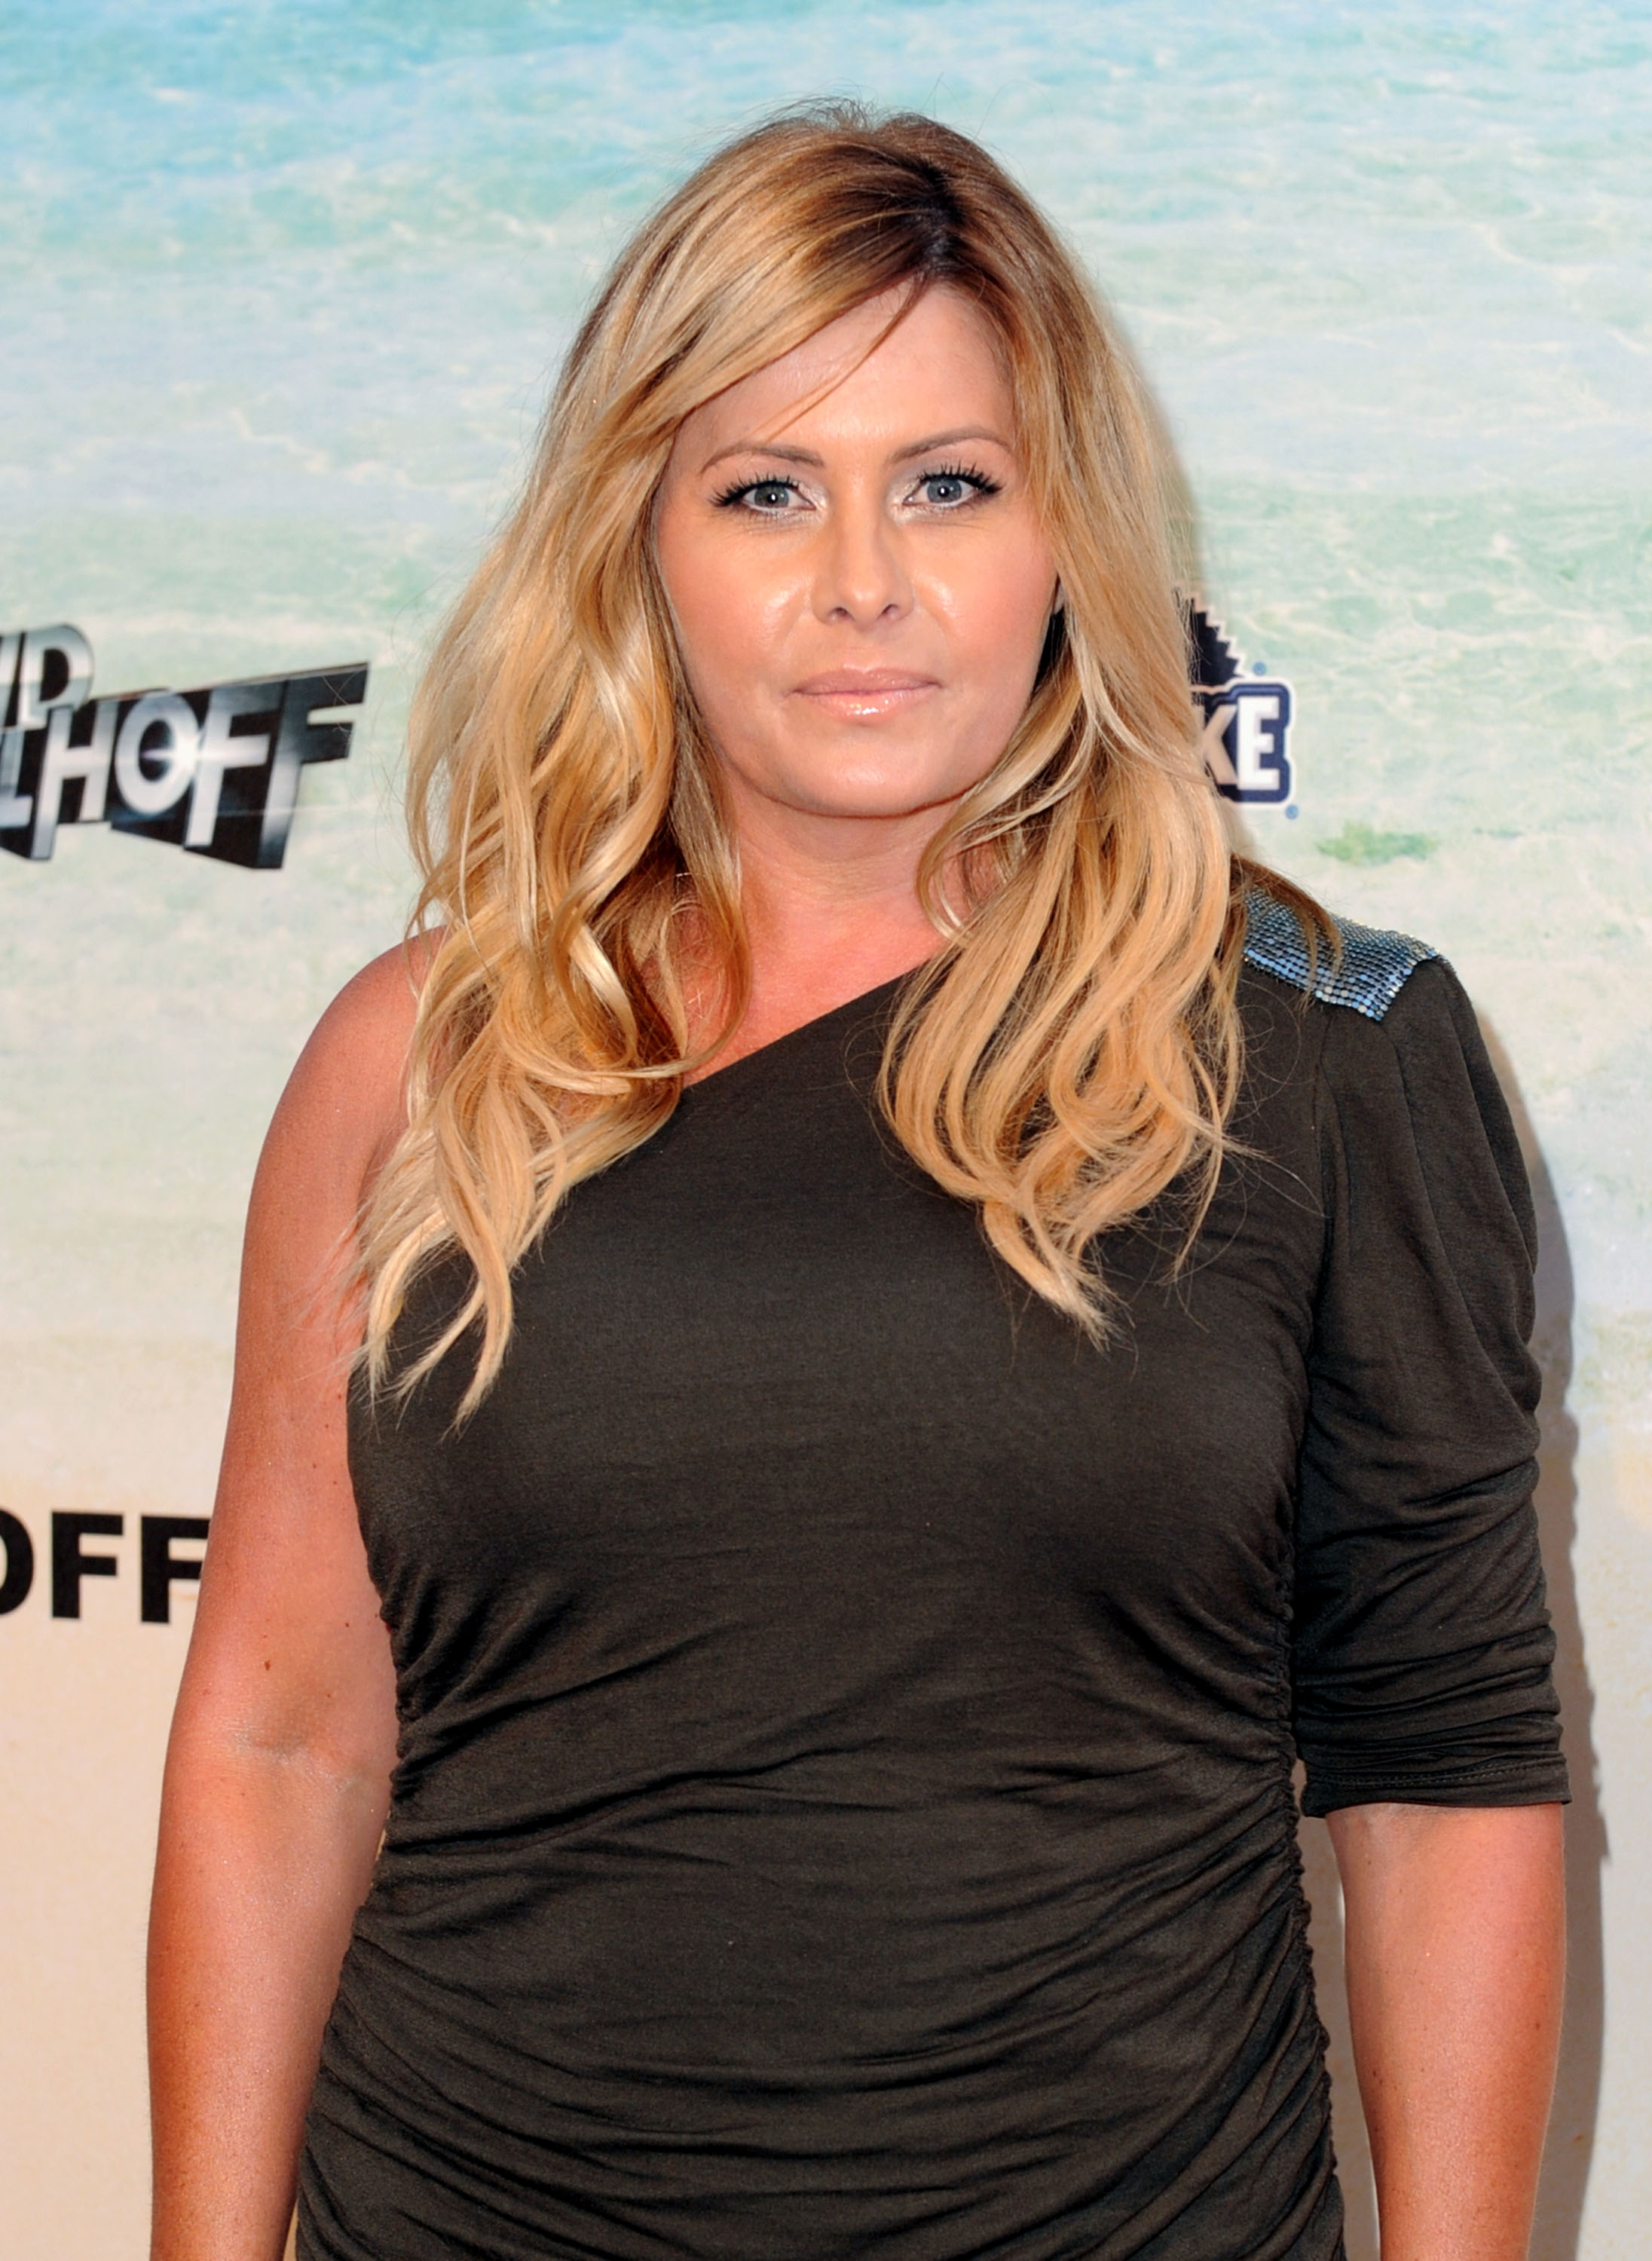 Nicole Eggert earned a  million dollar salary, leaving the net worth at 4 million in 2017